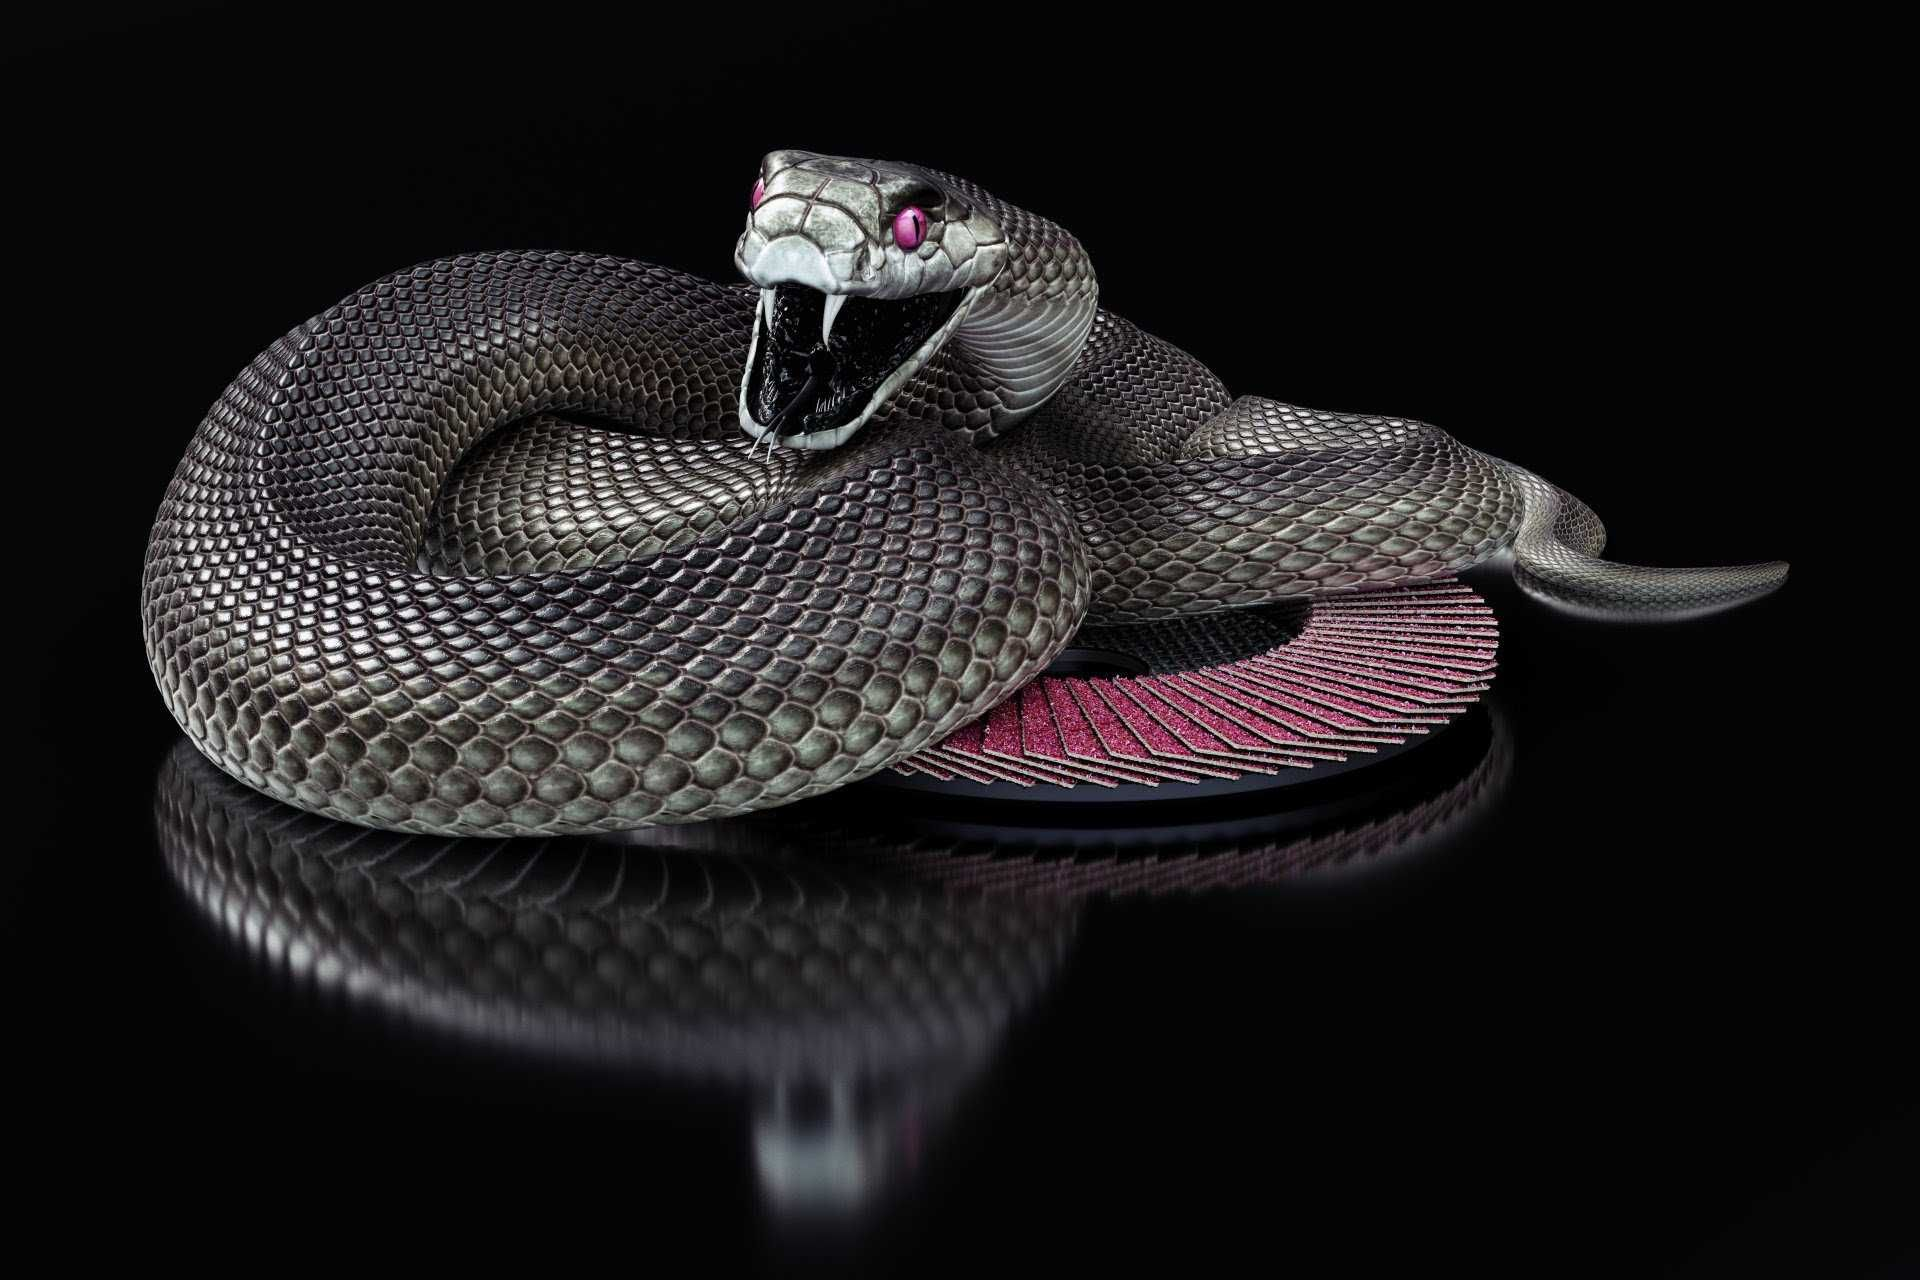 Download Snake Wallpaper High Definition Fuy6e Hdxwallpaperz Com Snake Wallpaper Black Mamba Snake